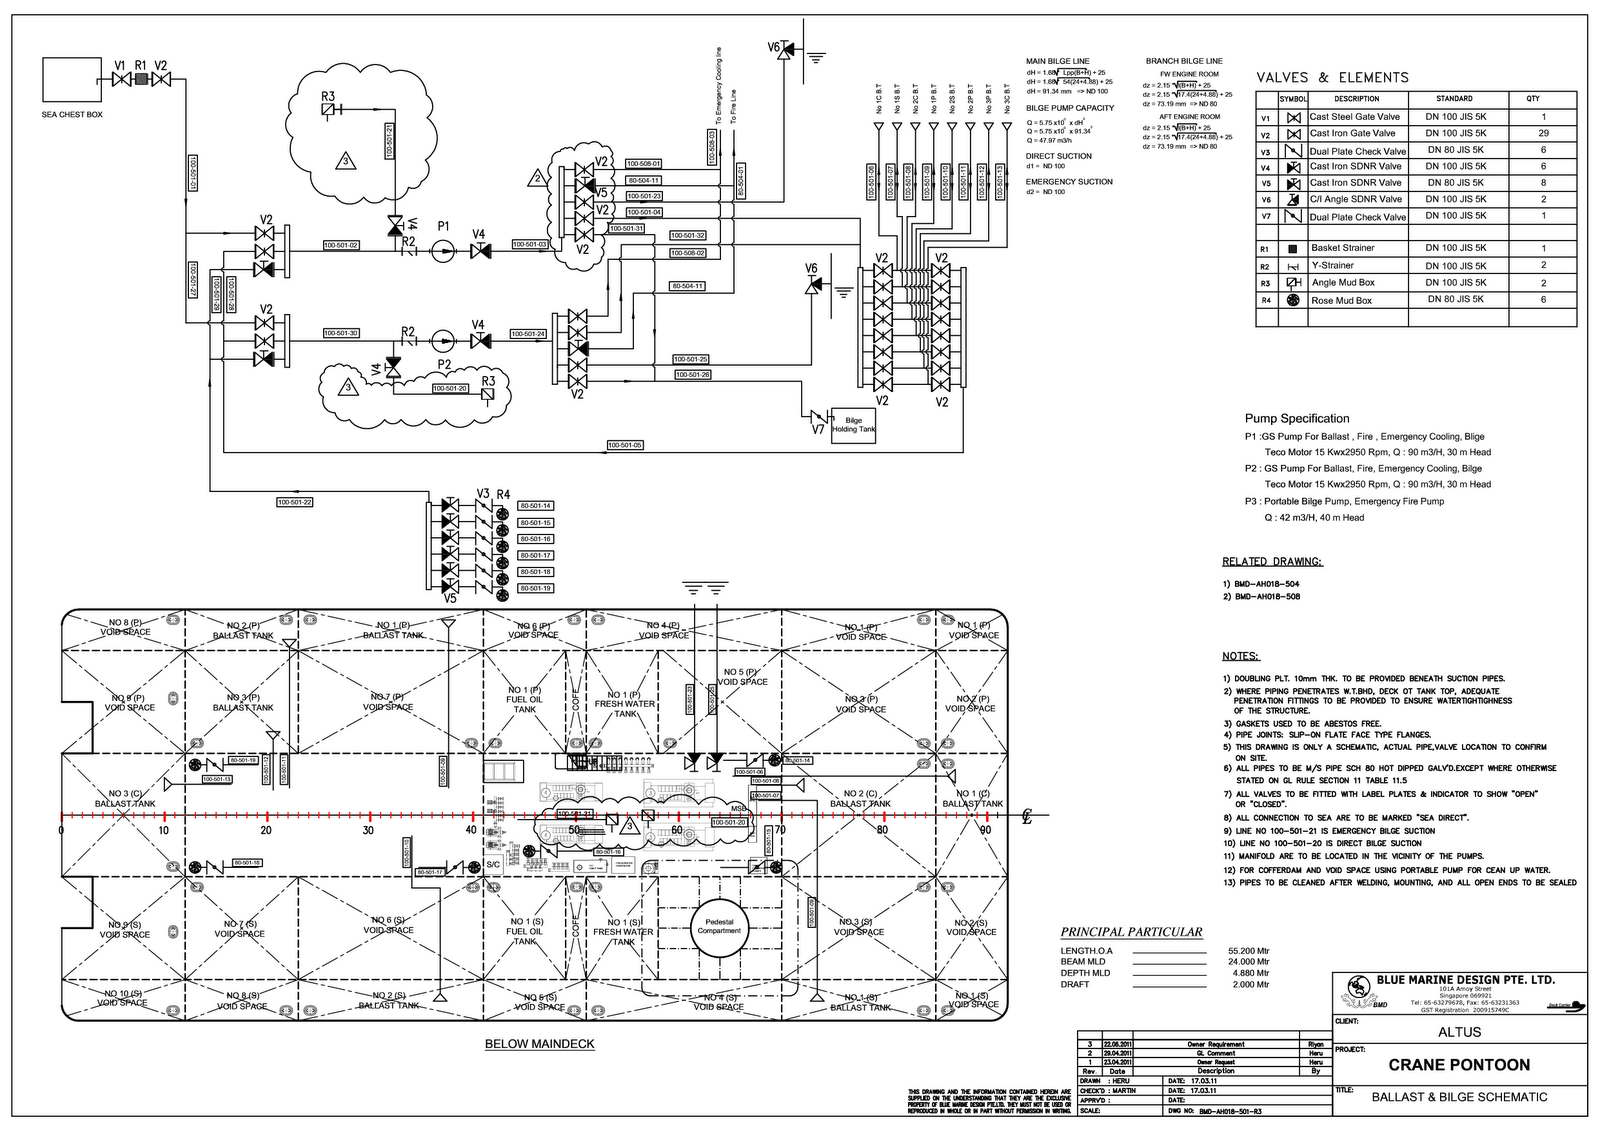 Schematic Pipe / P&ID Drawing